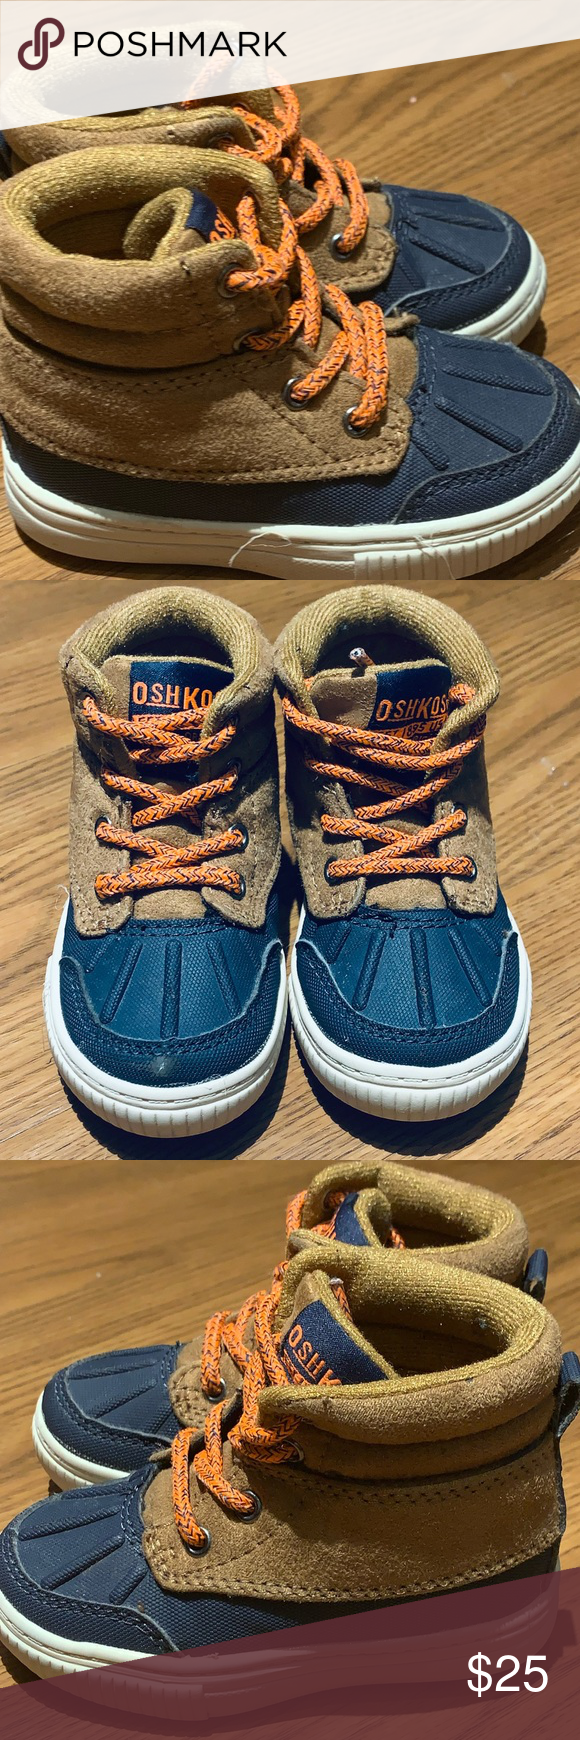 OshKosh Toddler Duck Boots, Size 5 Toddler duck boots